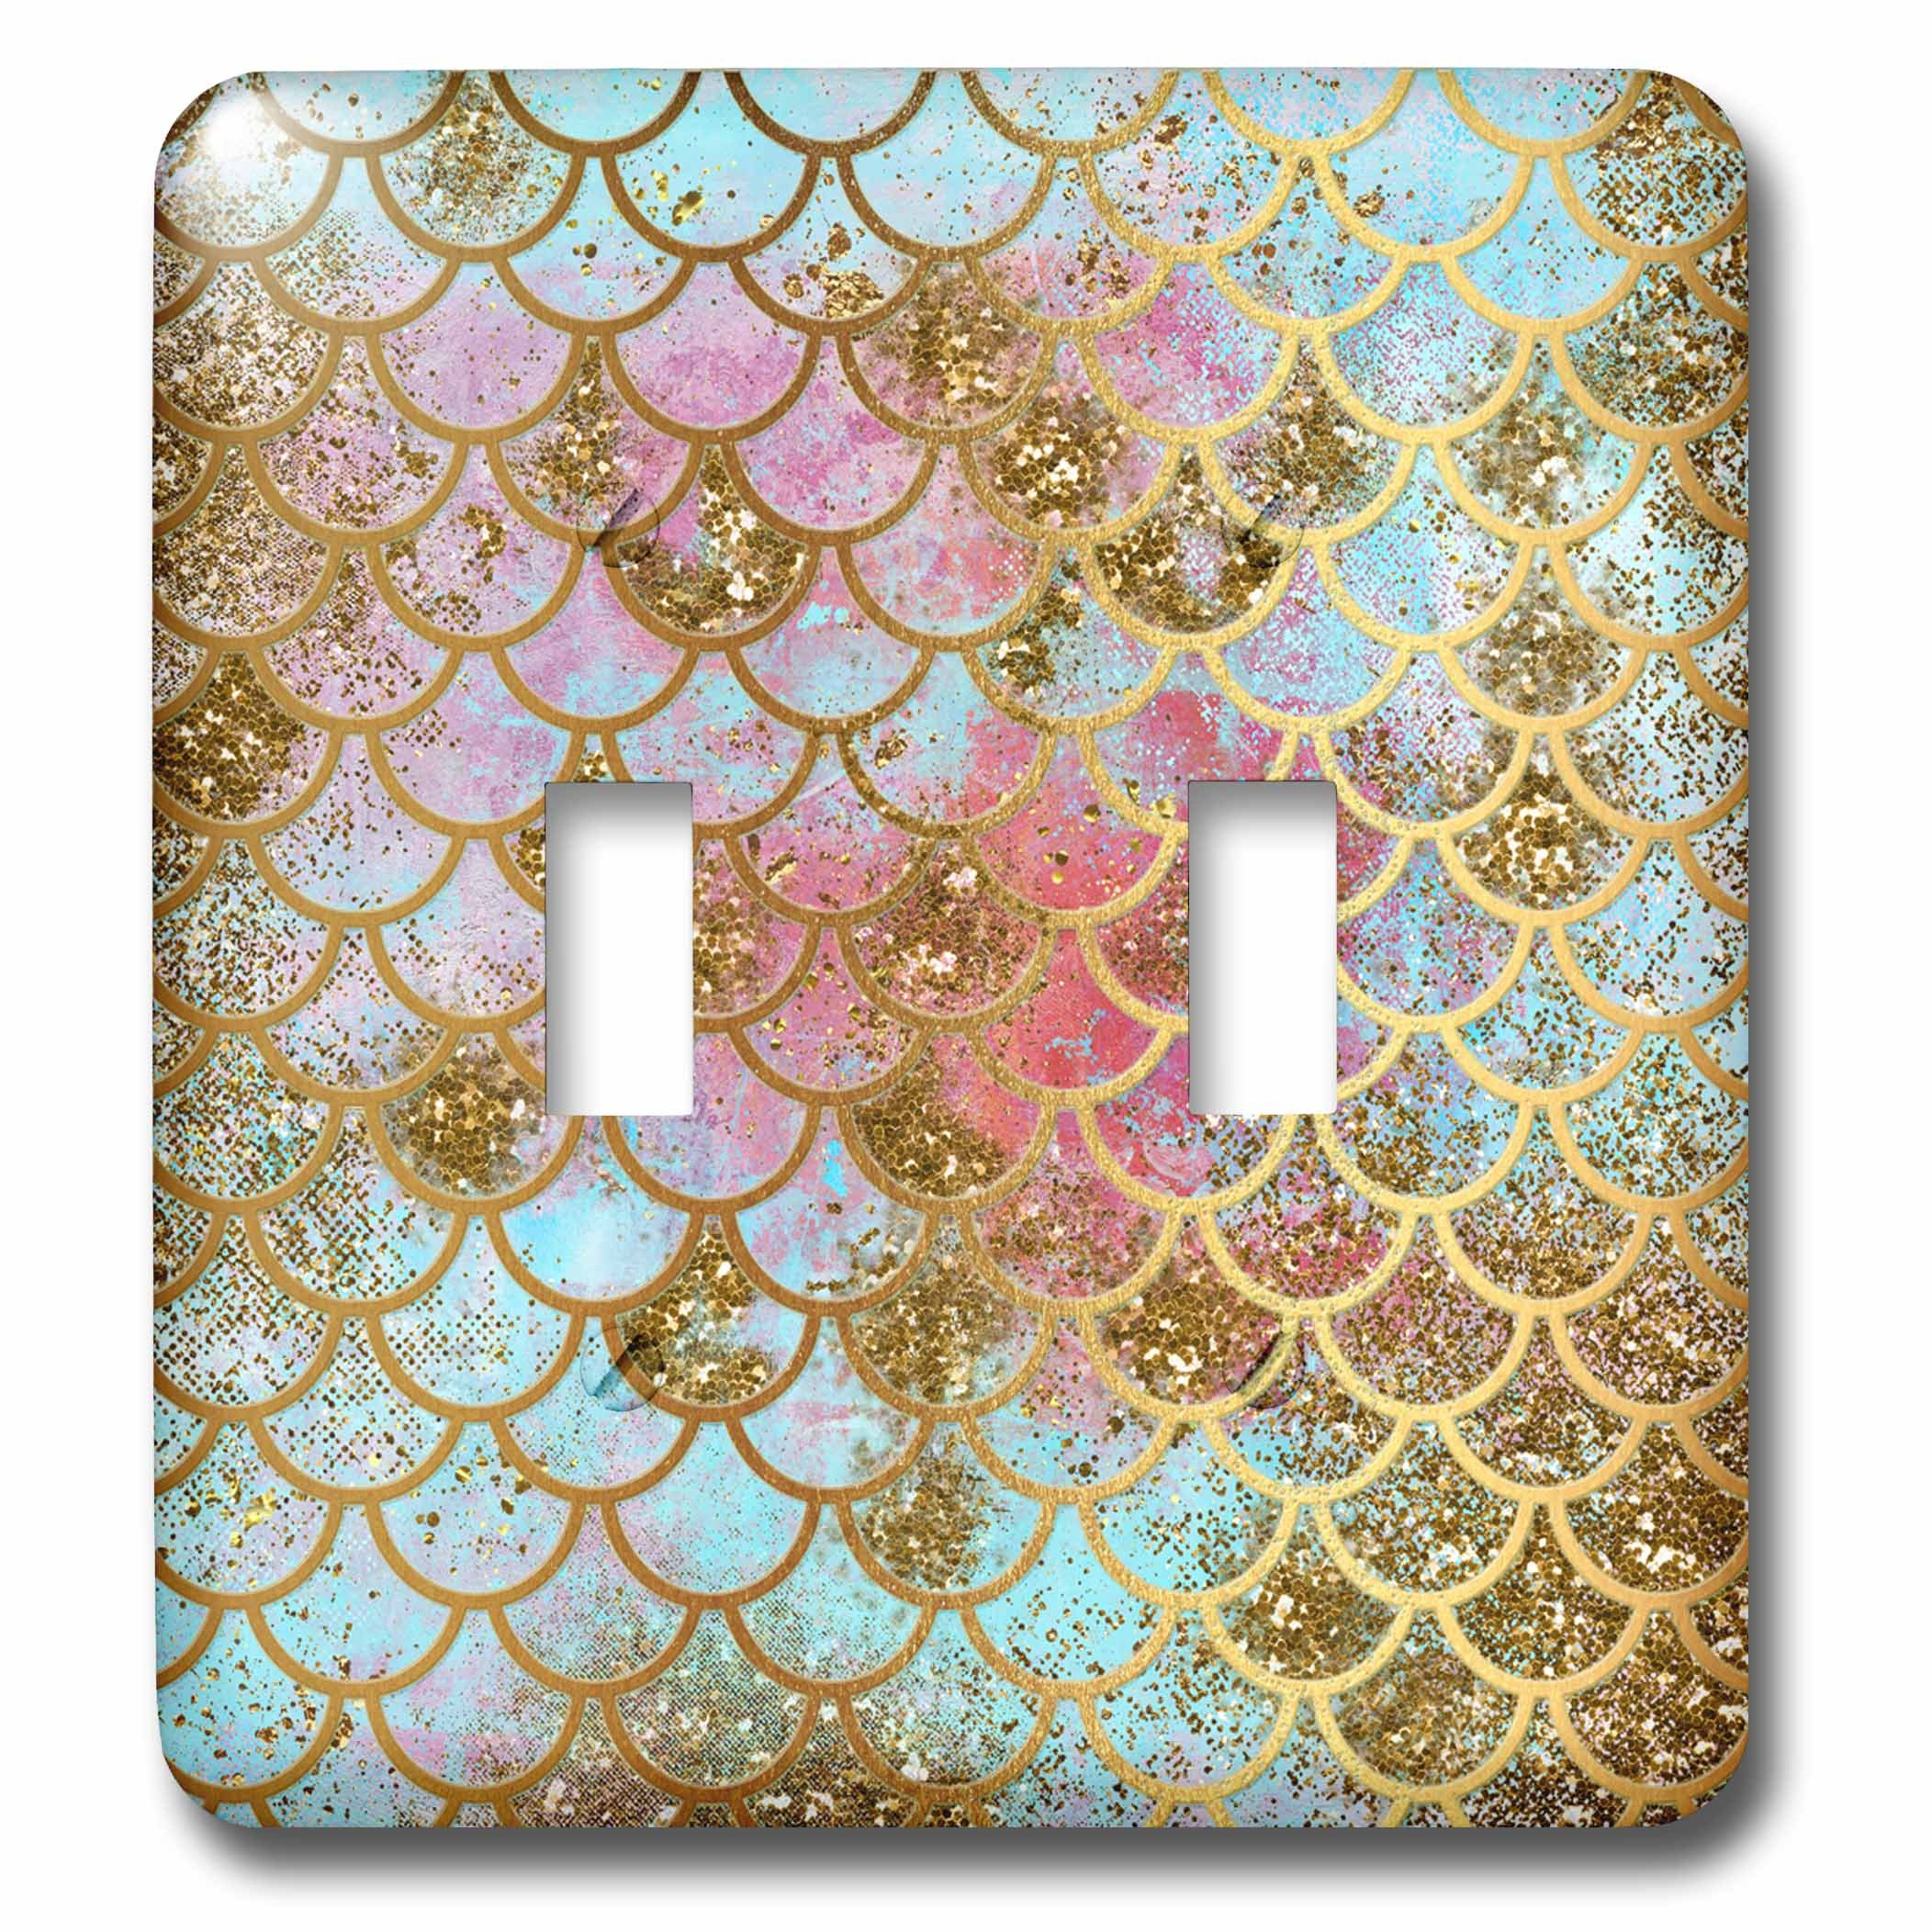 3dRose (lsp_266933_2) Double Toggle Switch (2) Sparkling Pink Luxury Elegant Mermaid Scales Glitter Effect Art Print